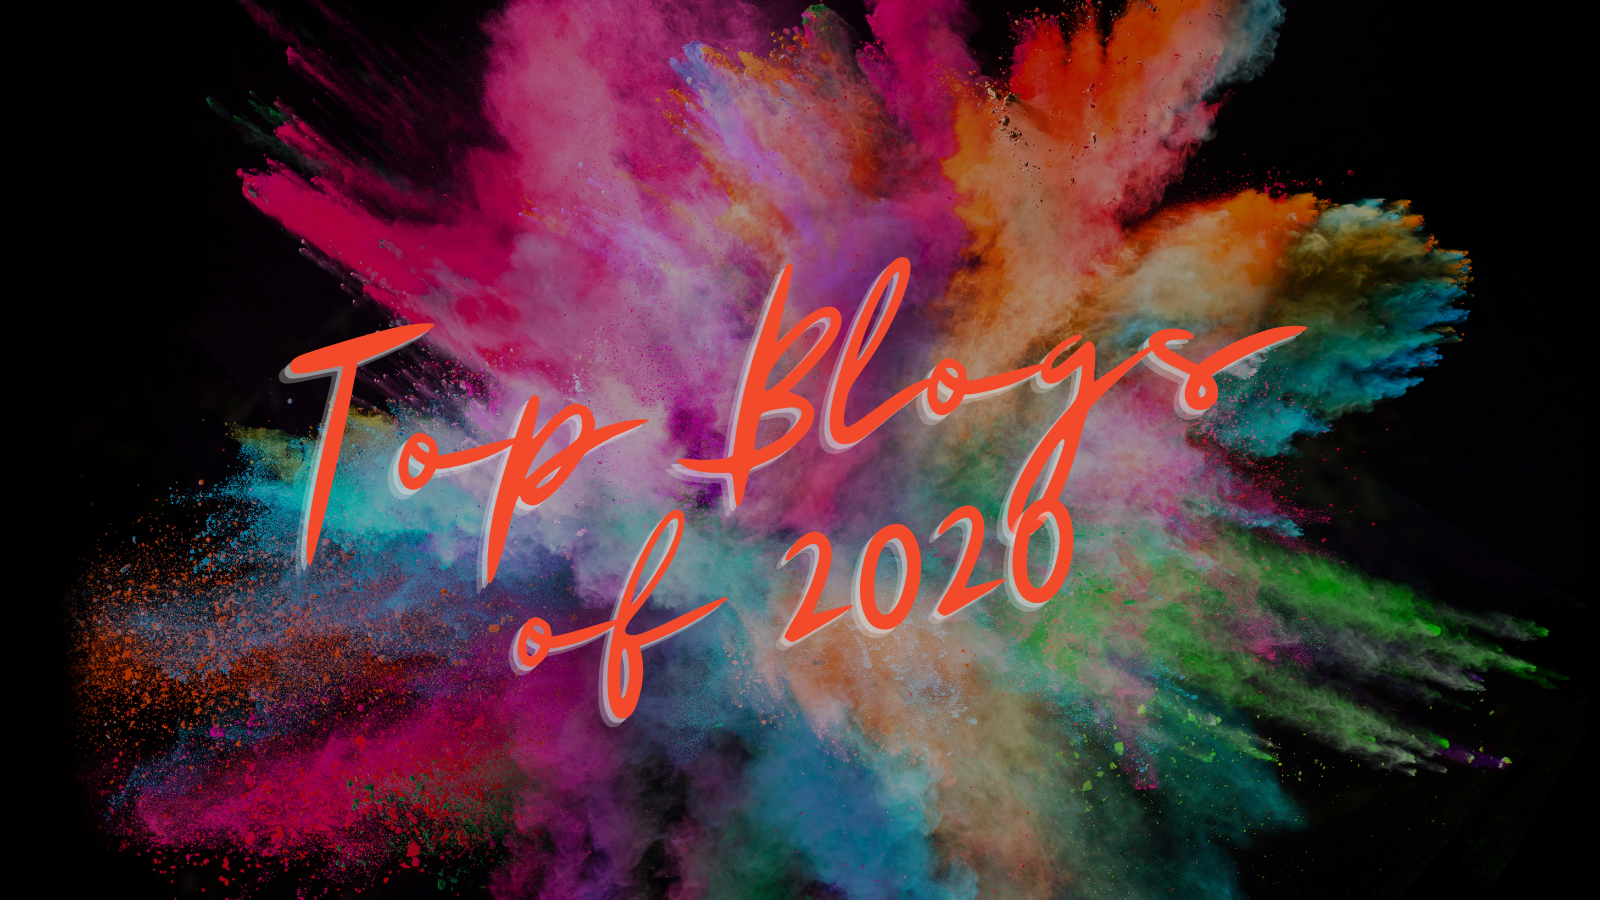 Top Able blog posts of 2020